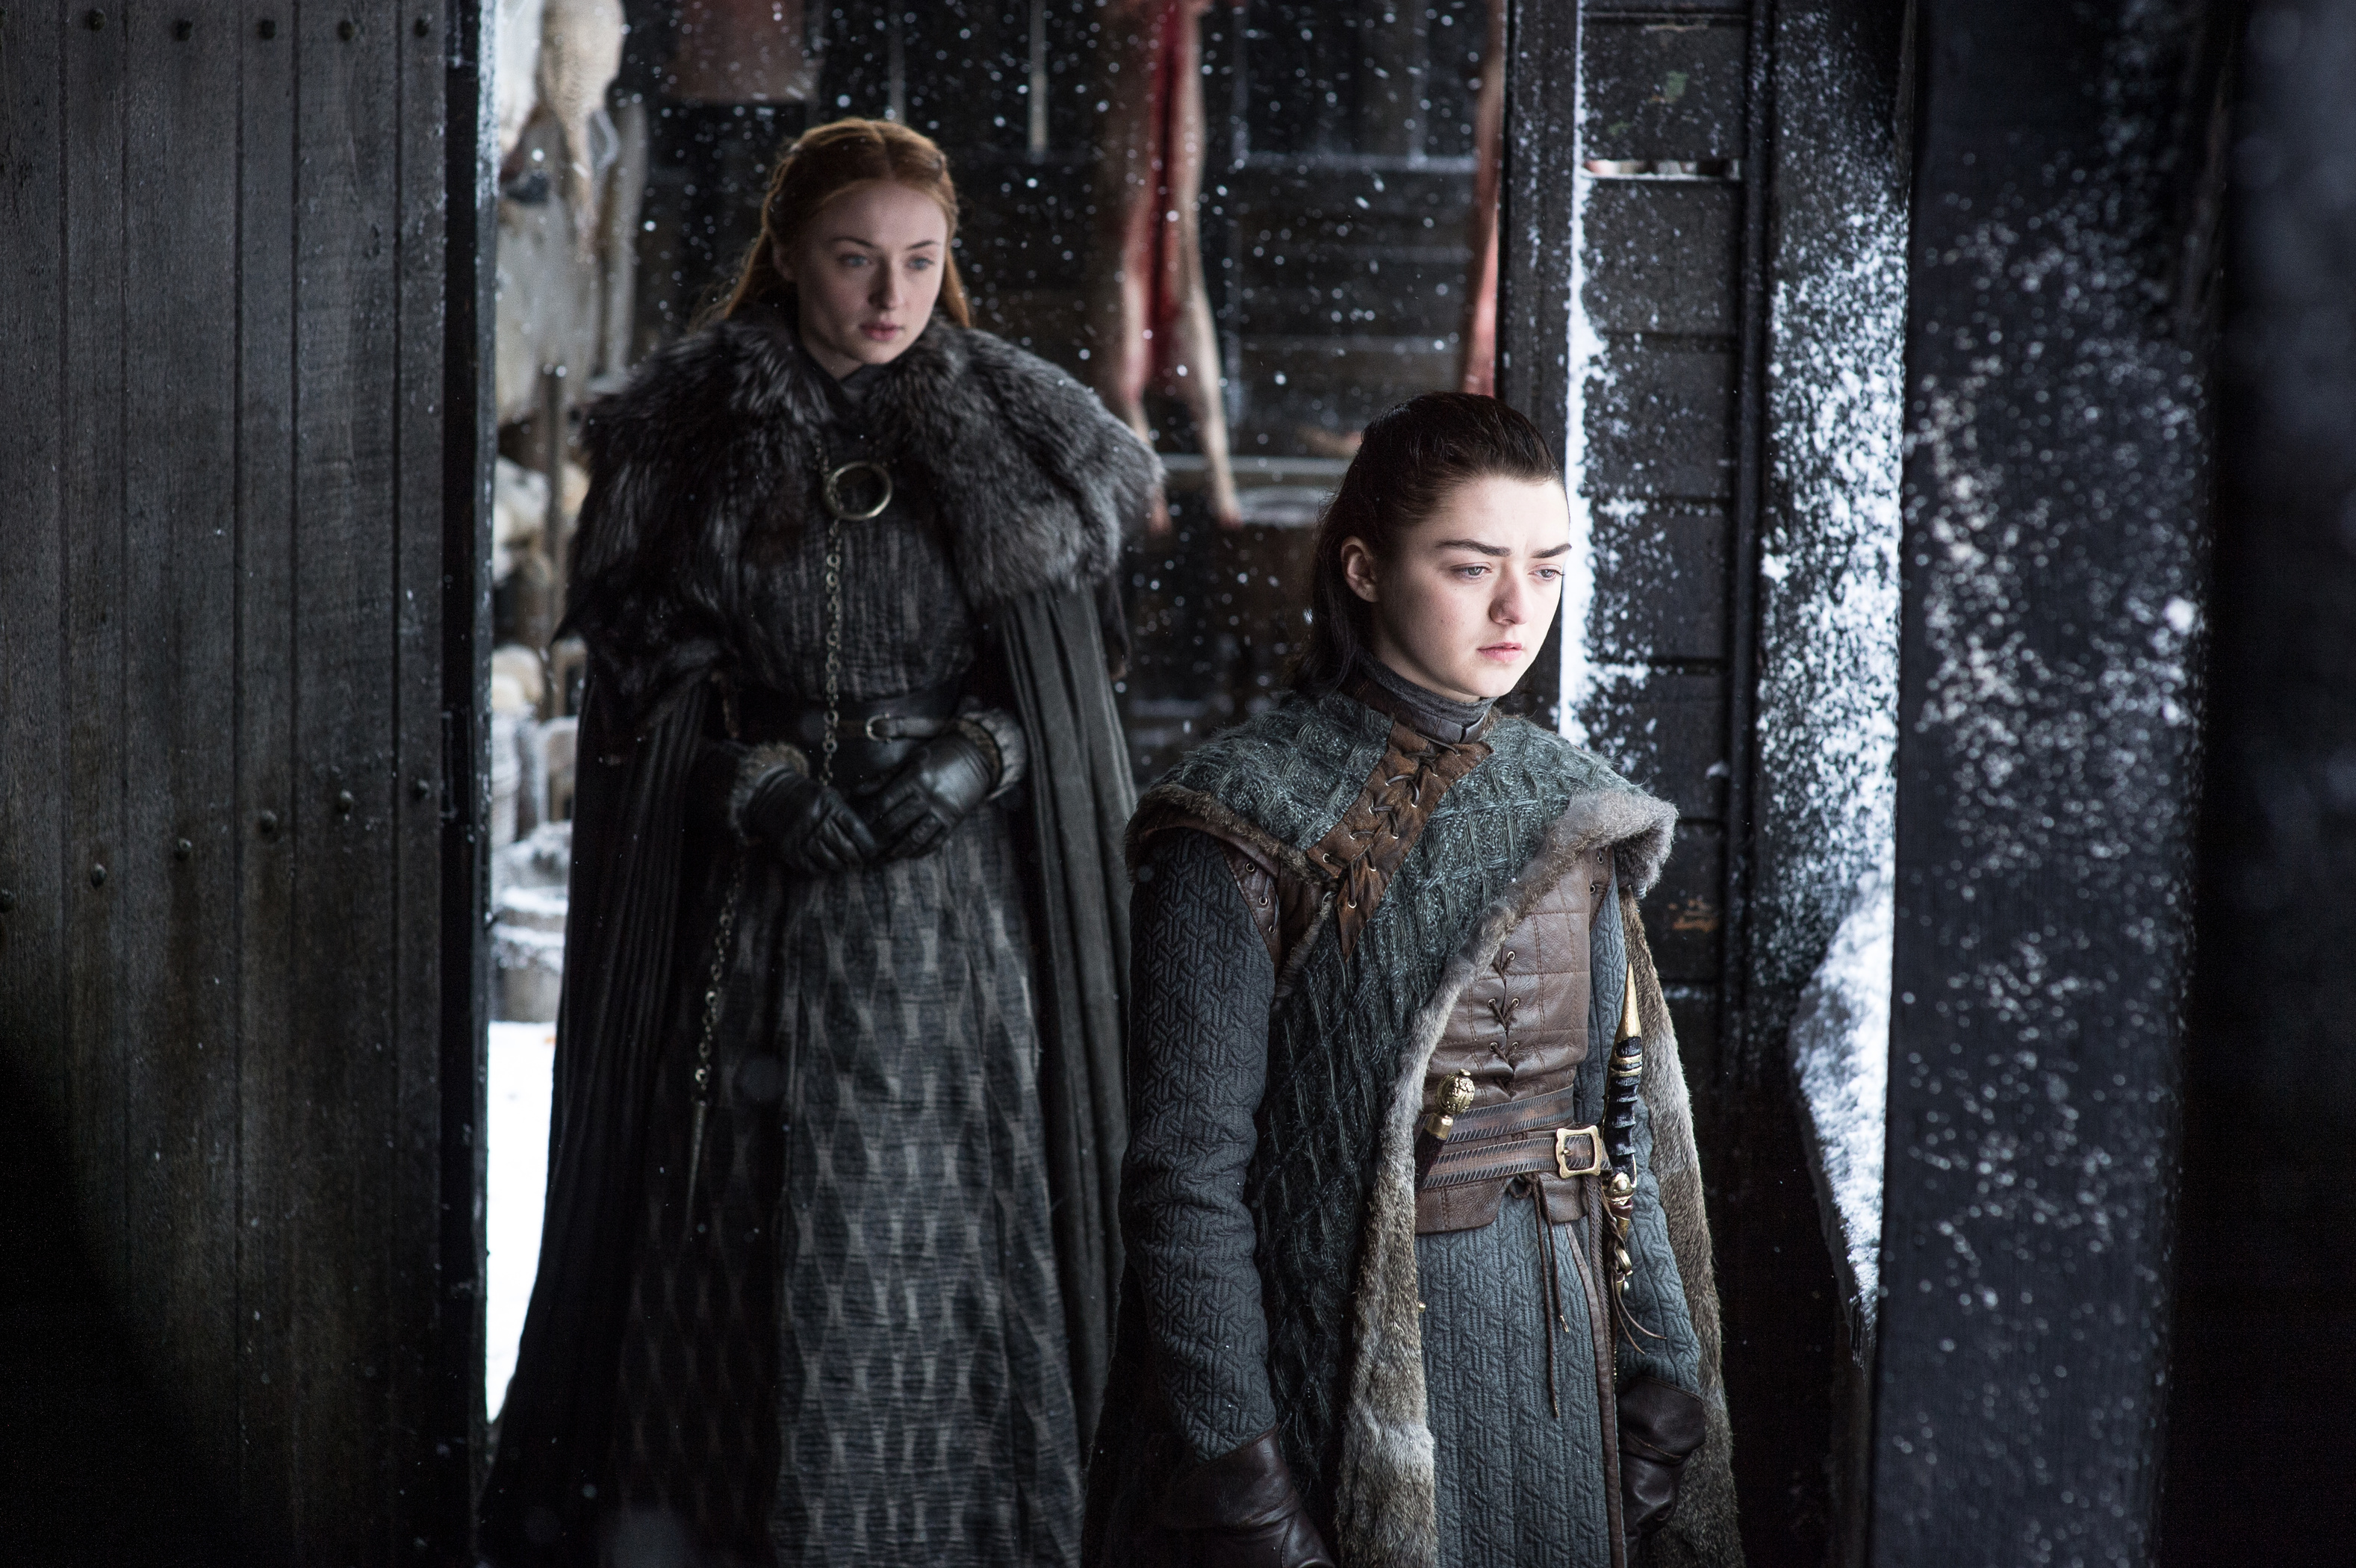 """Game of Thrones"" may have just hinted at the endgame for both Sansa and Arya"